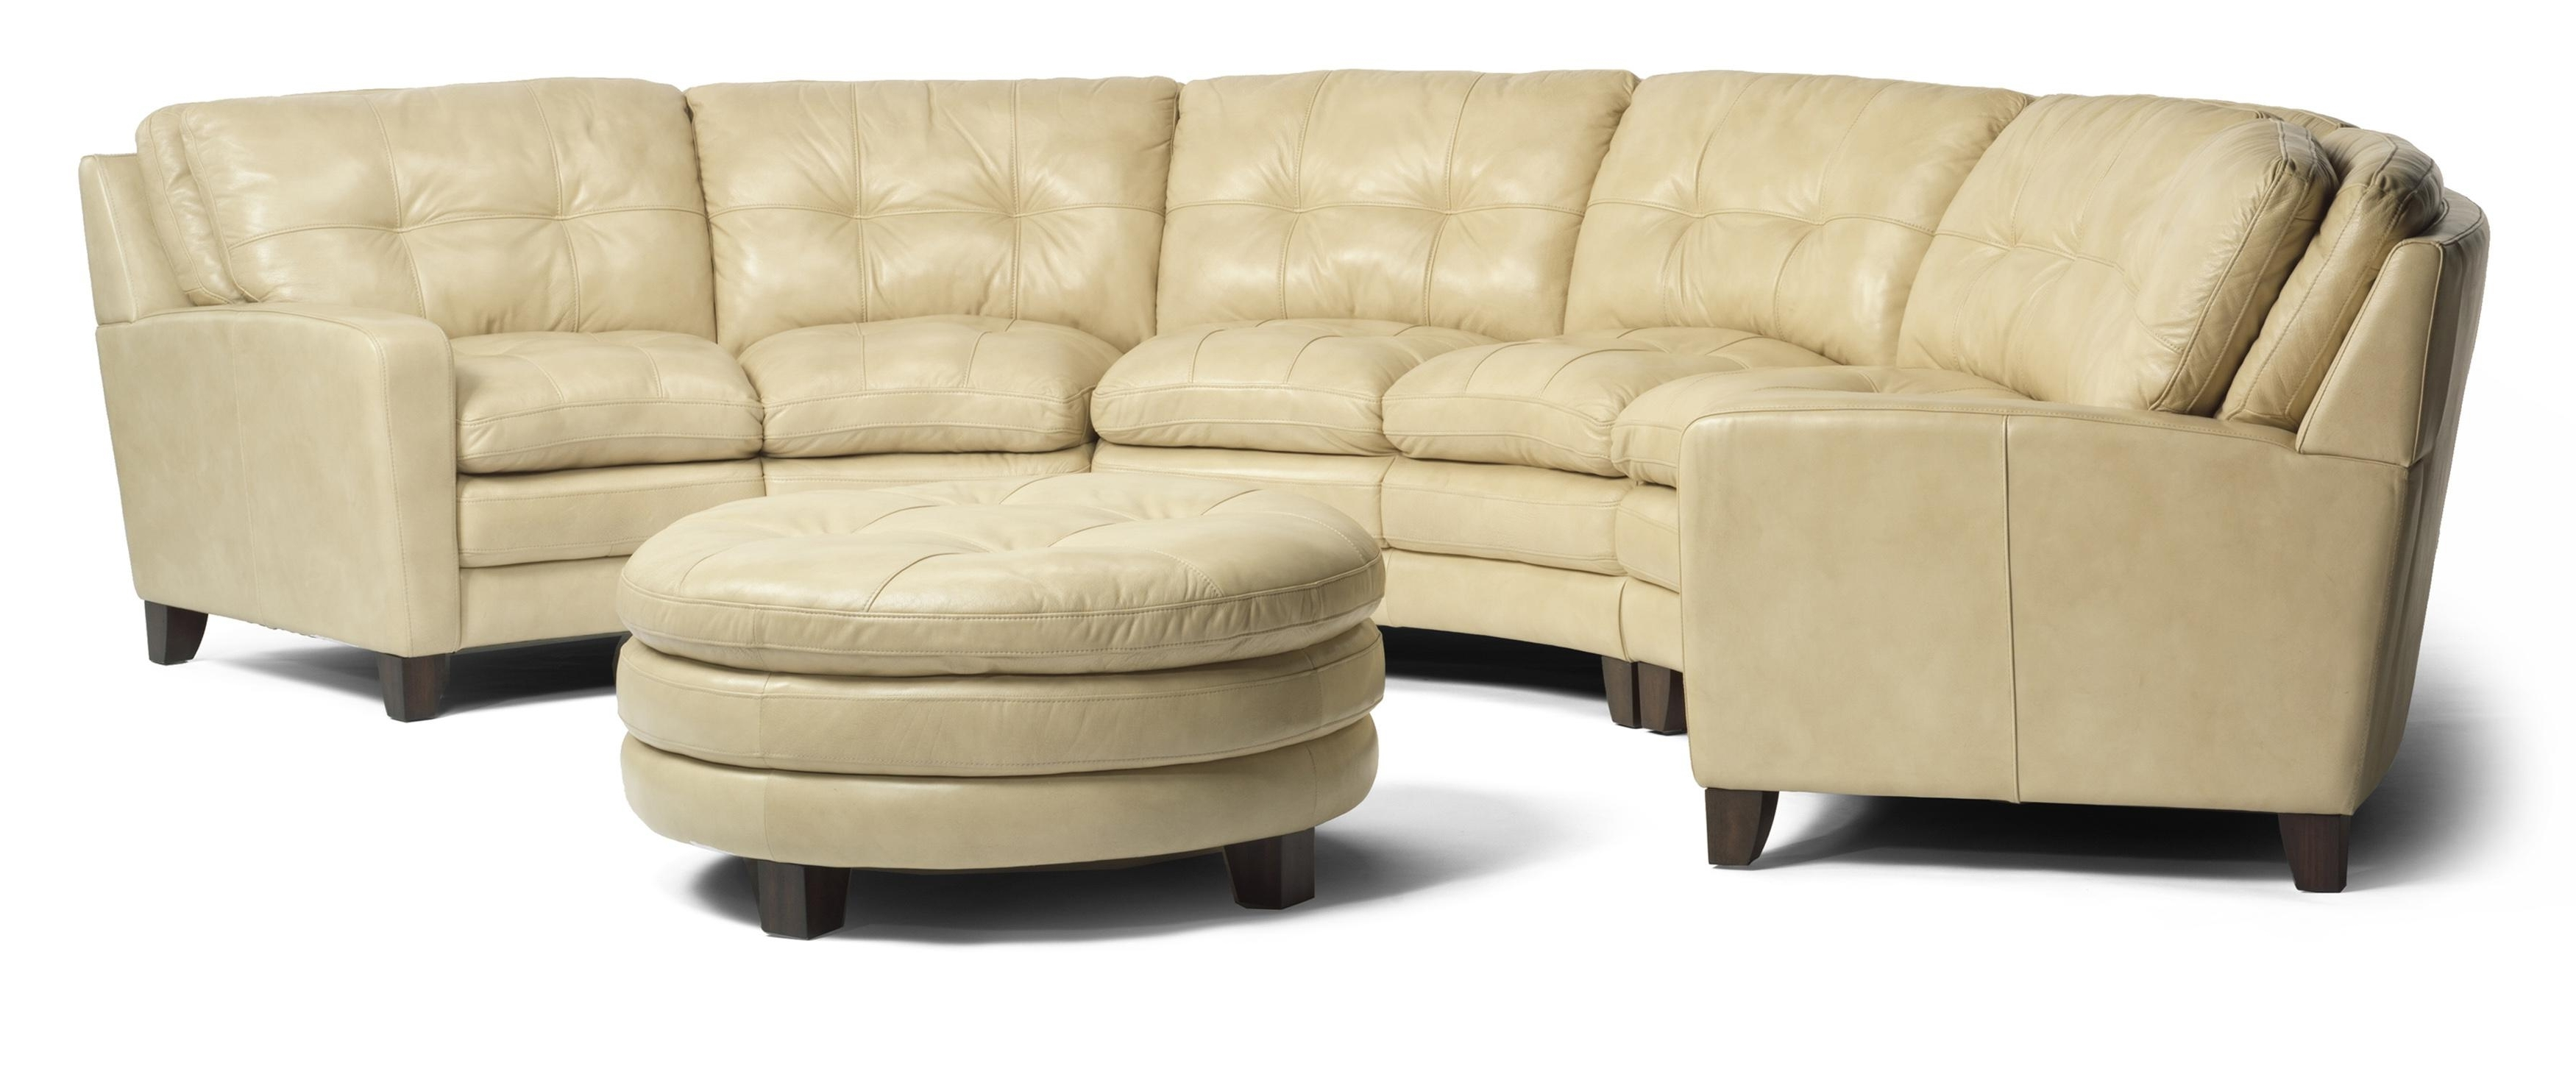 Widely Used Johnson City Tn Sectional Sofas Throughout Flexsteel Latitudes – South Street Curved Sectional Sofa – Ahfa (View 12 of 15)